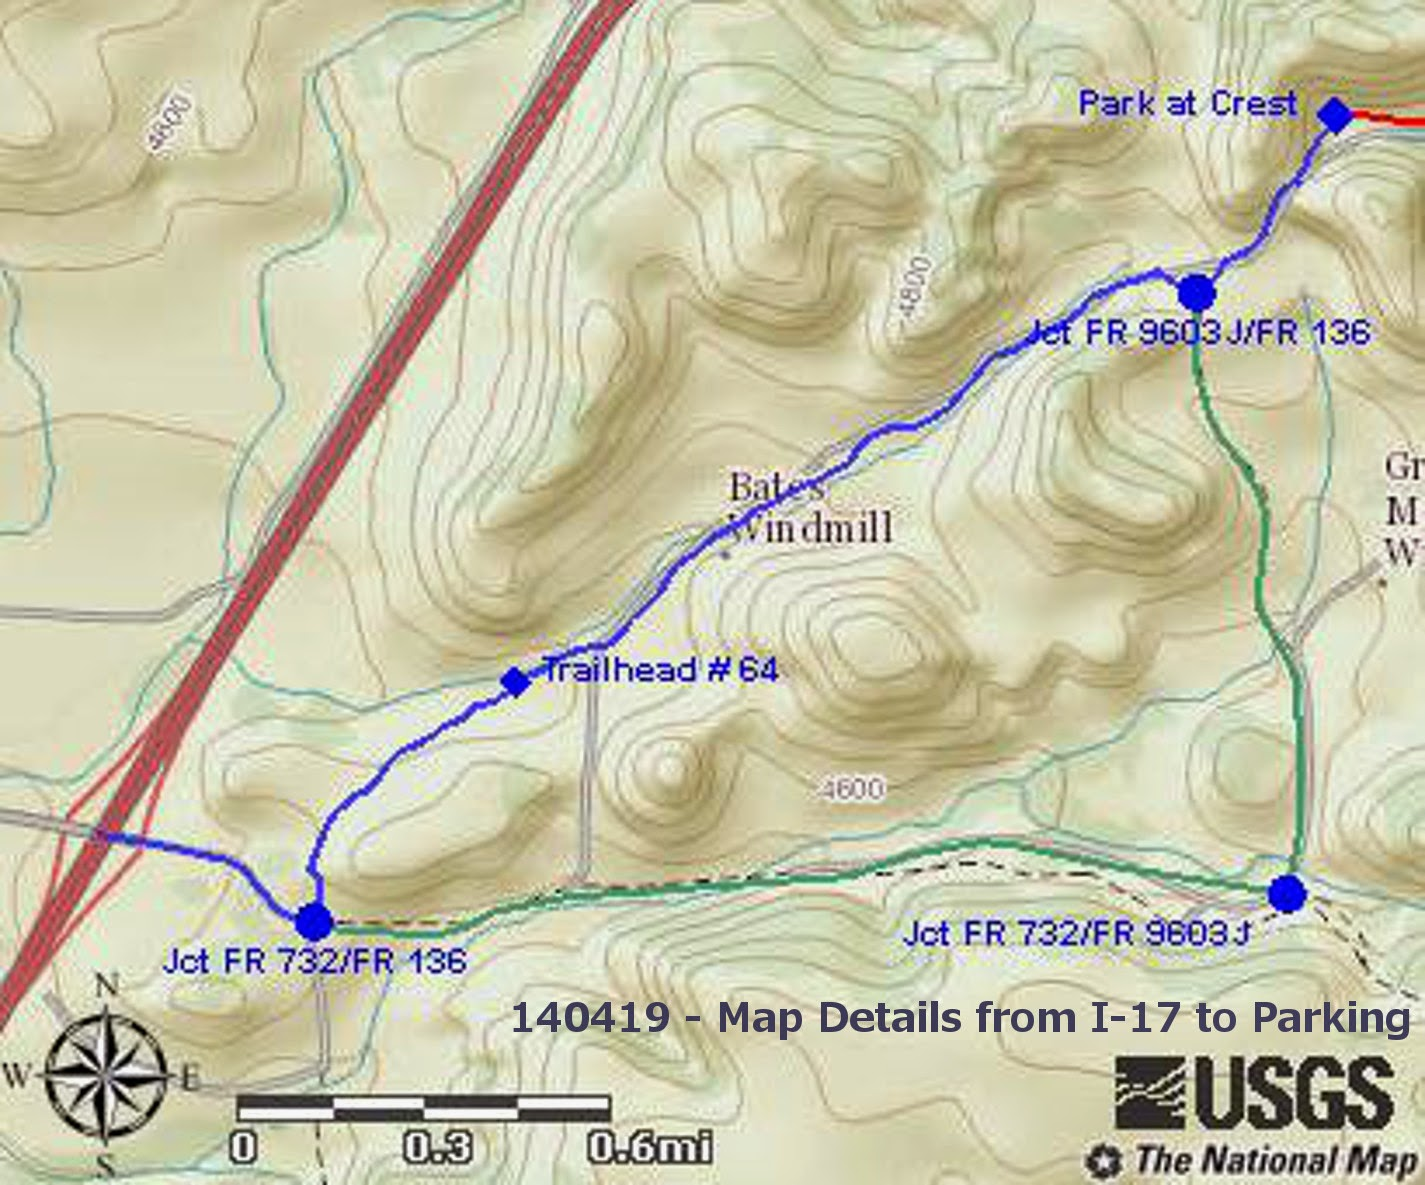 map showing route and alternate route to parking at the crest